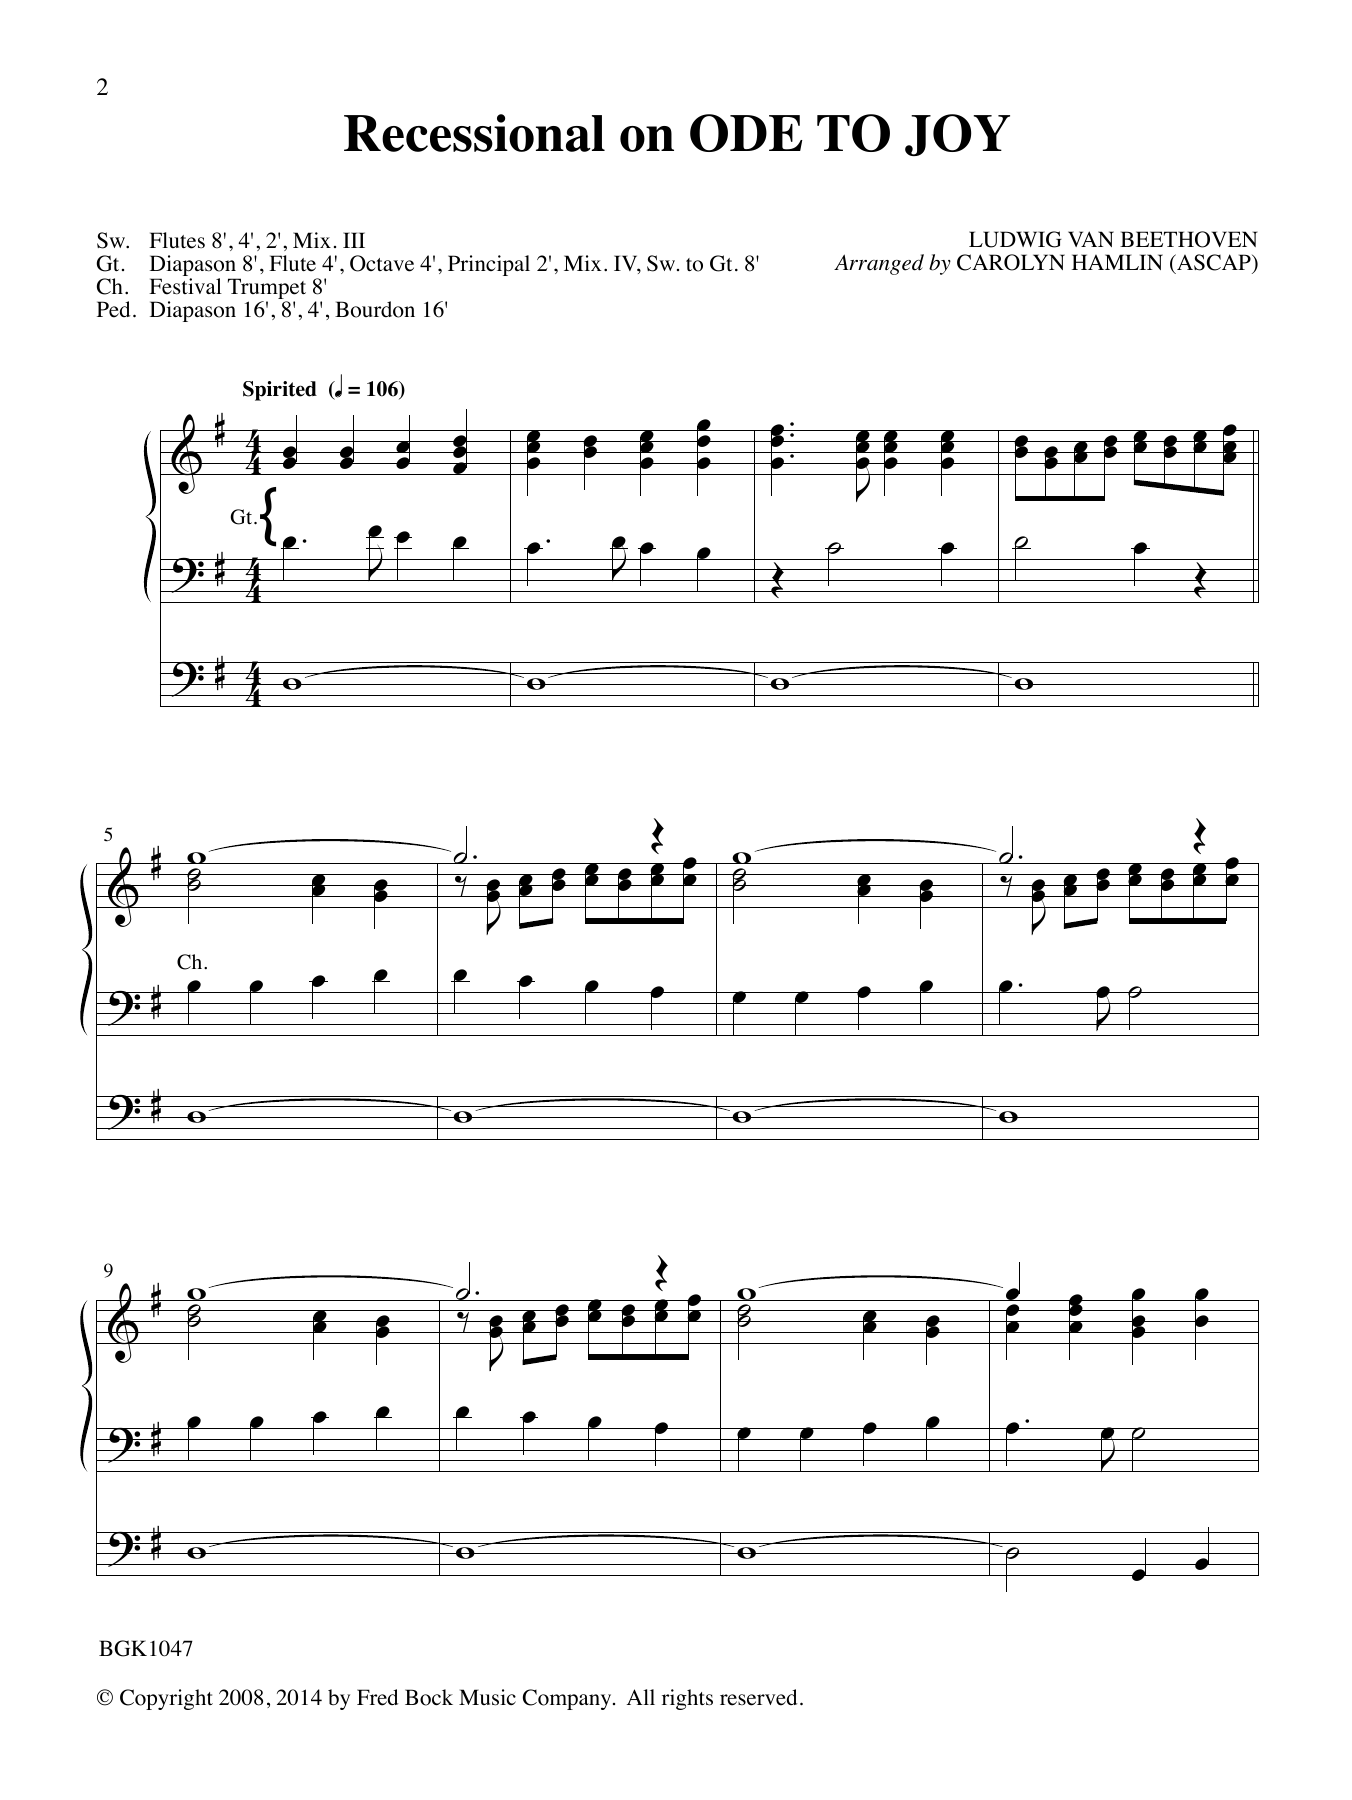 Recessional On Ode To Joy Sheet Music By Ludwig Van